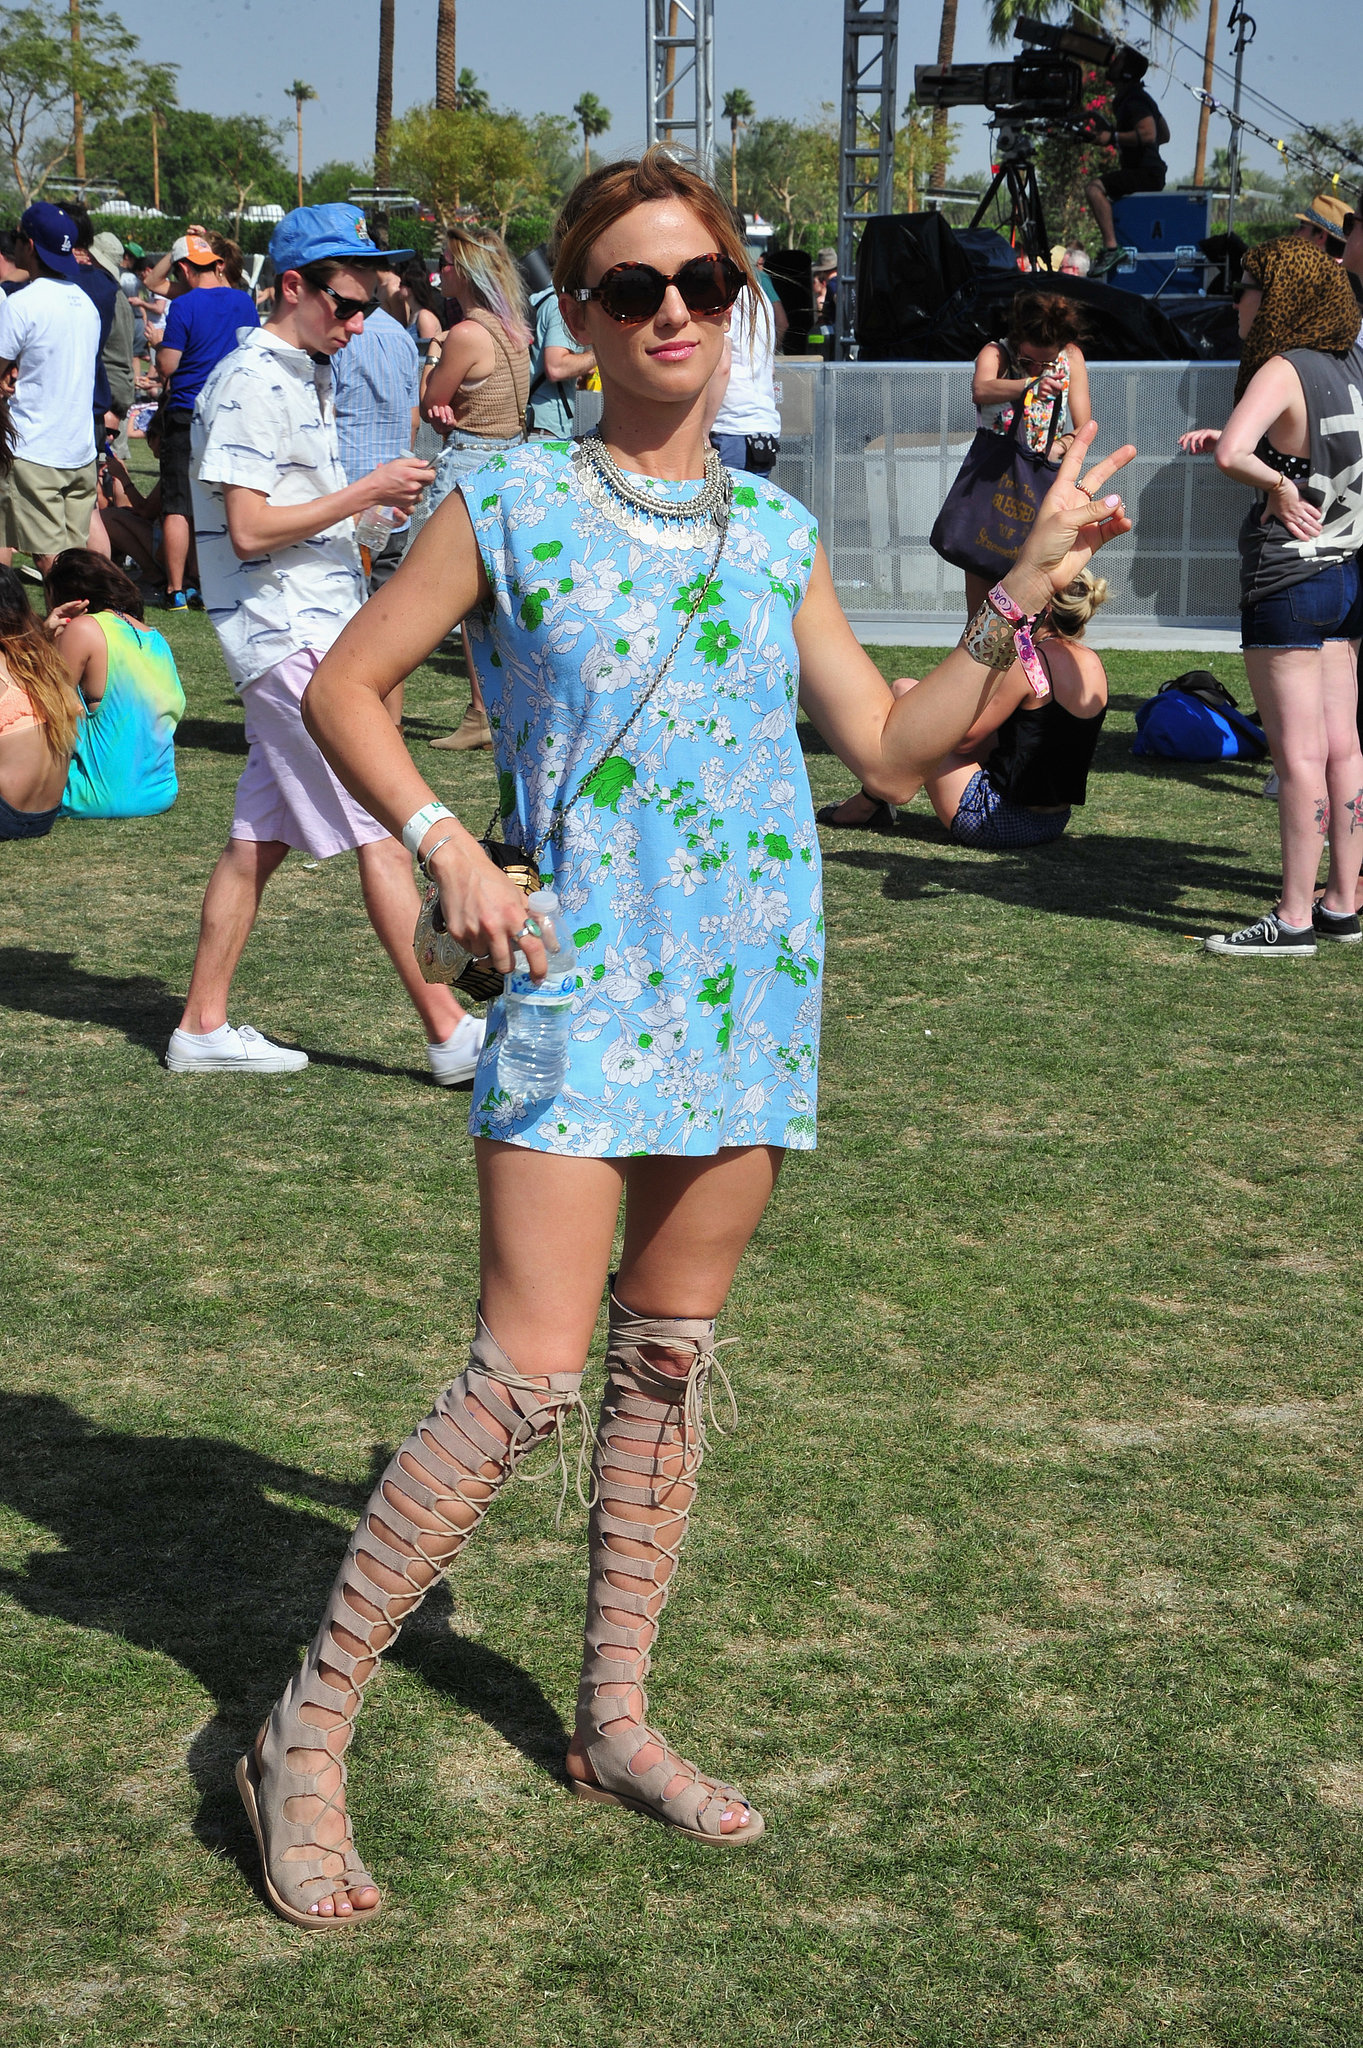 Festival Fashion: Knee-High Gladiator Sandals | We Didn't See This